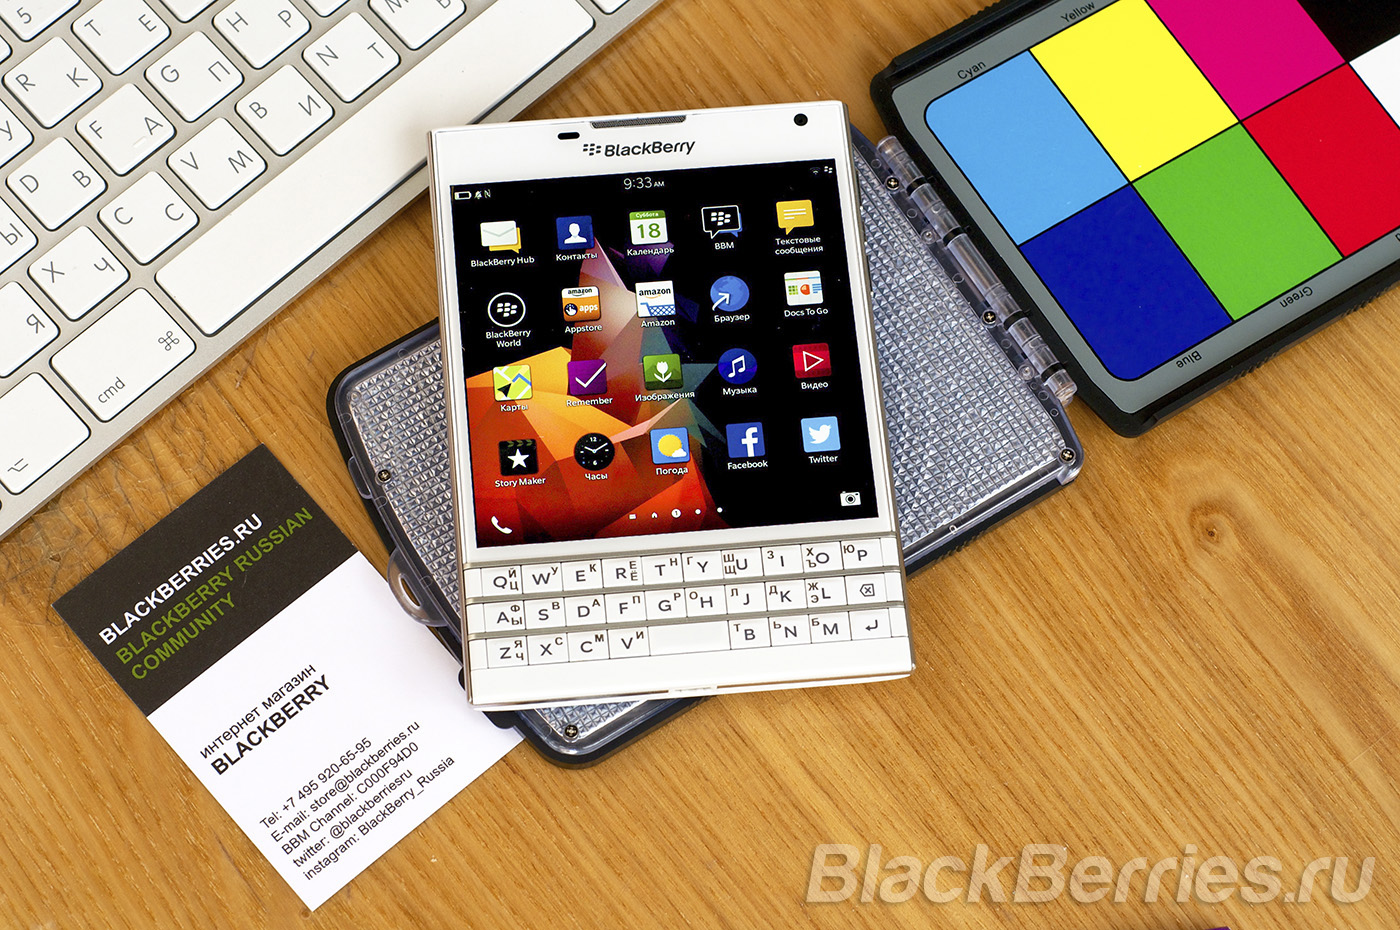 BlackBerry-Passport-Apps-18-07-02